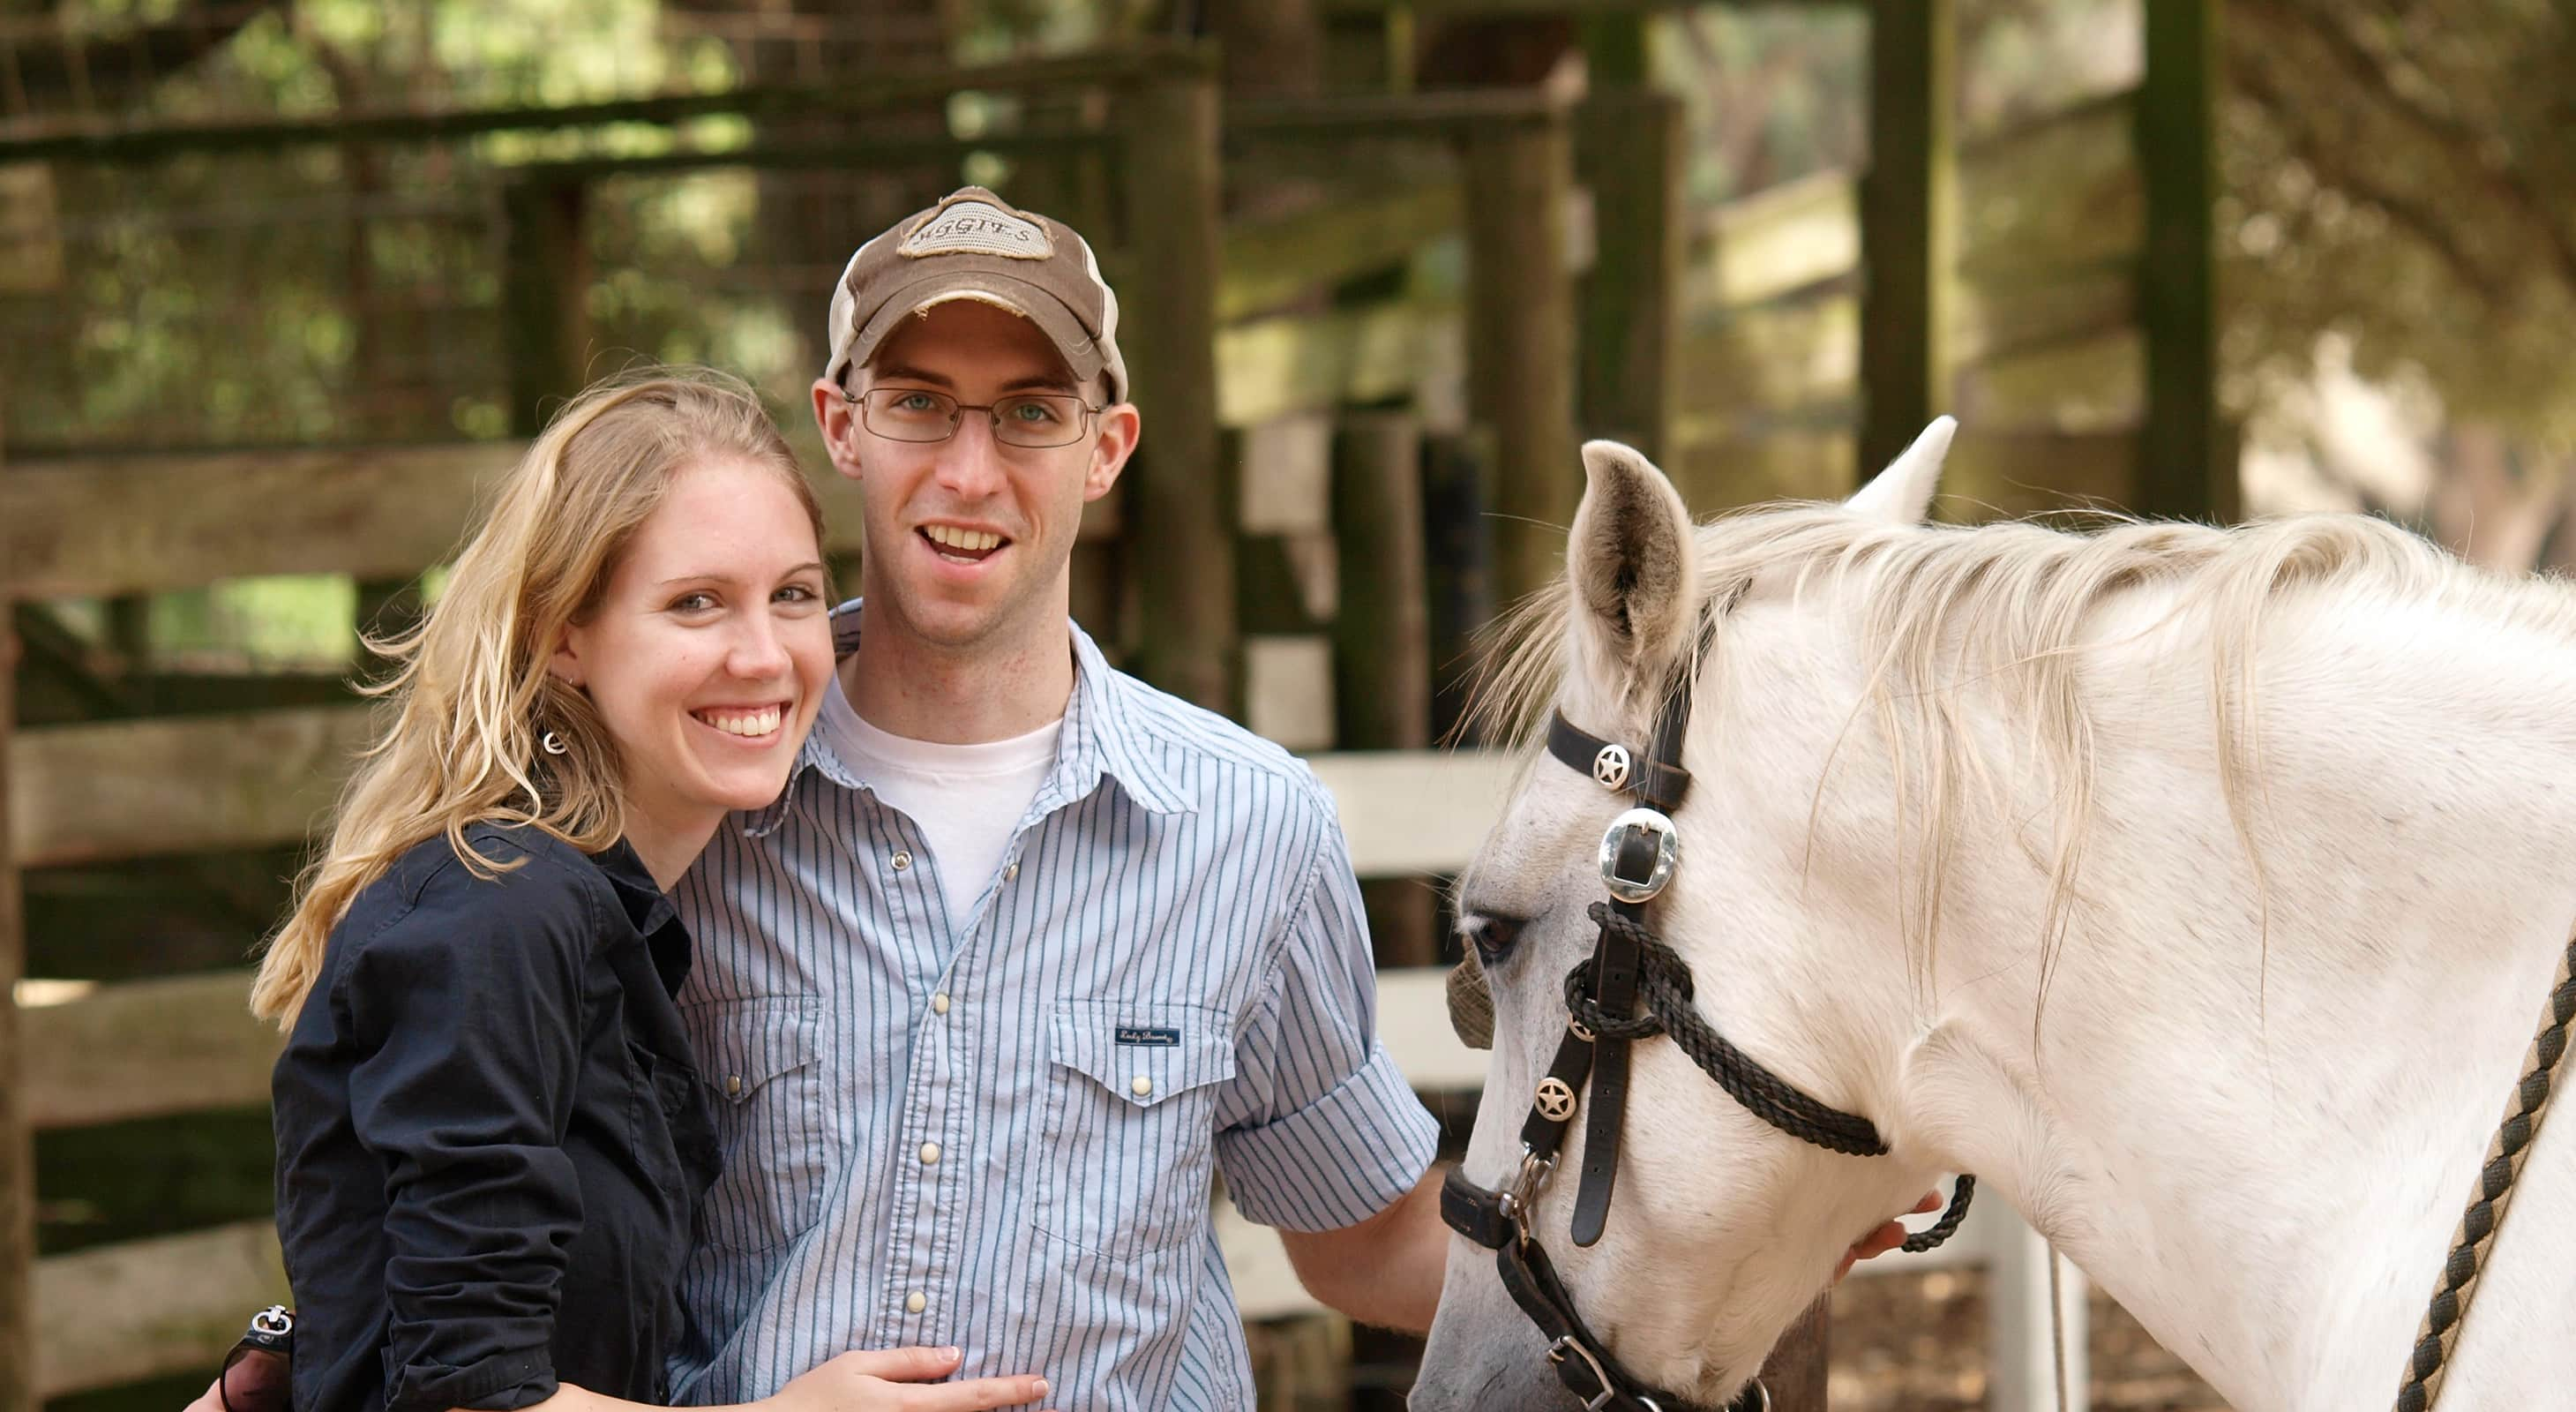 Couple standing next to a white horse